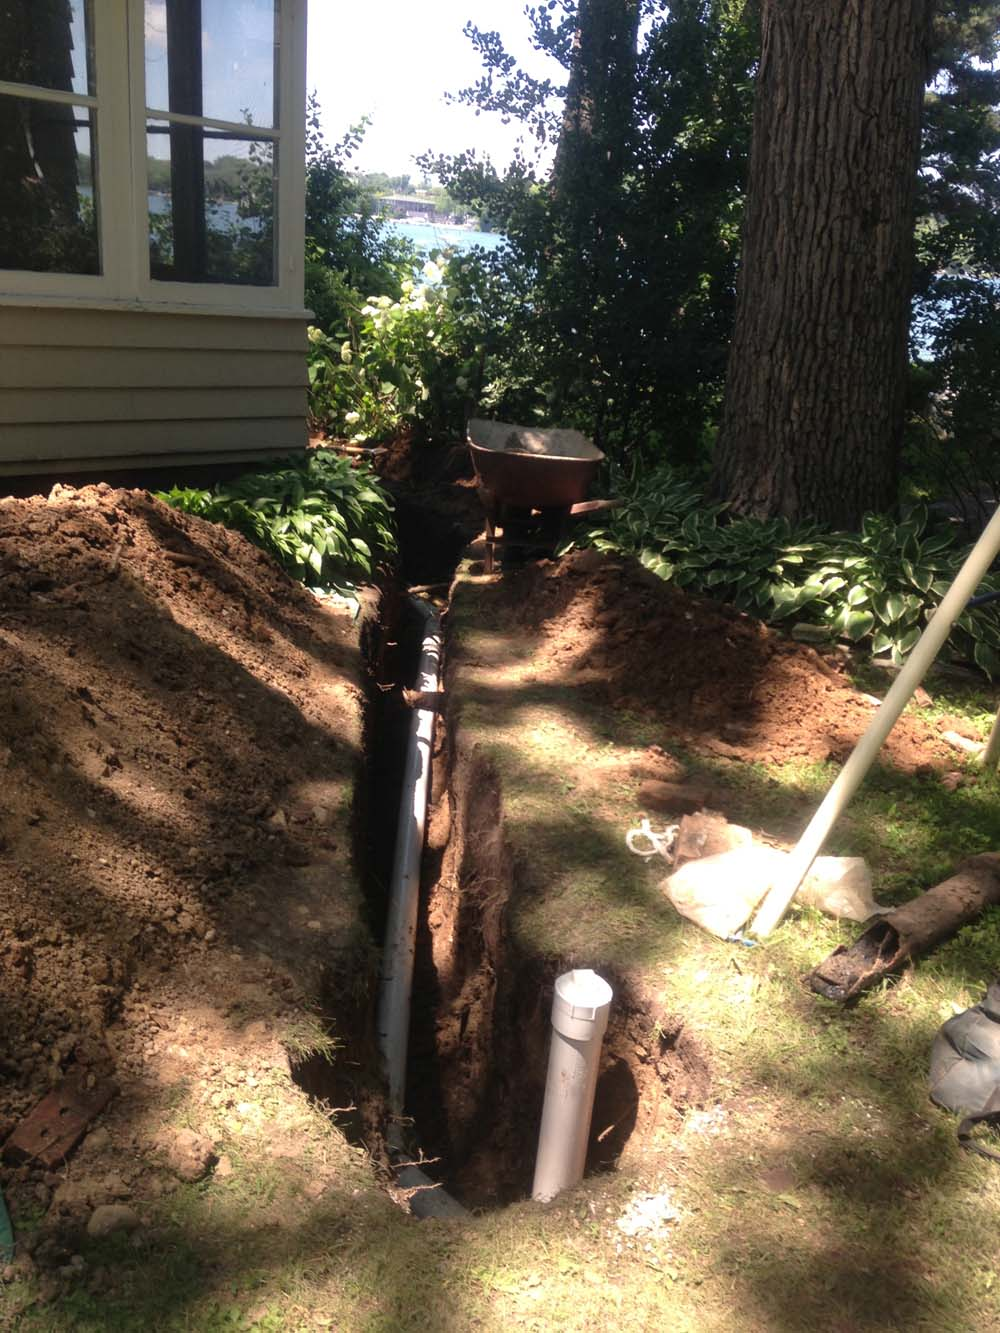 Ti Lake Mary Reroute Sewer Around Septic Tank And Install Clean Out For Maintainable